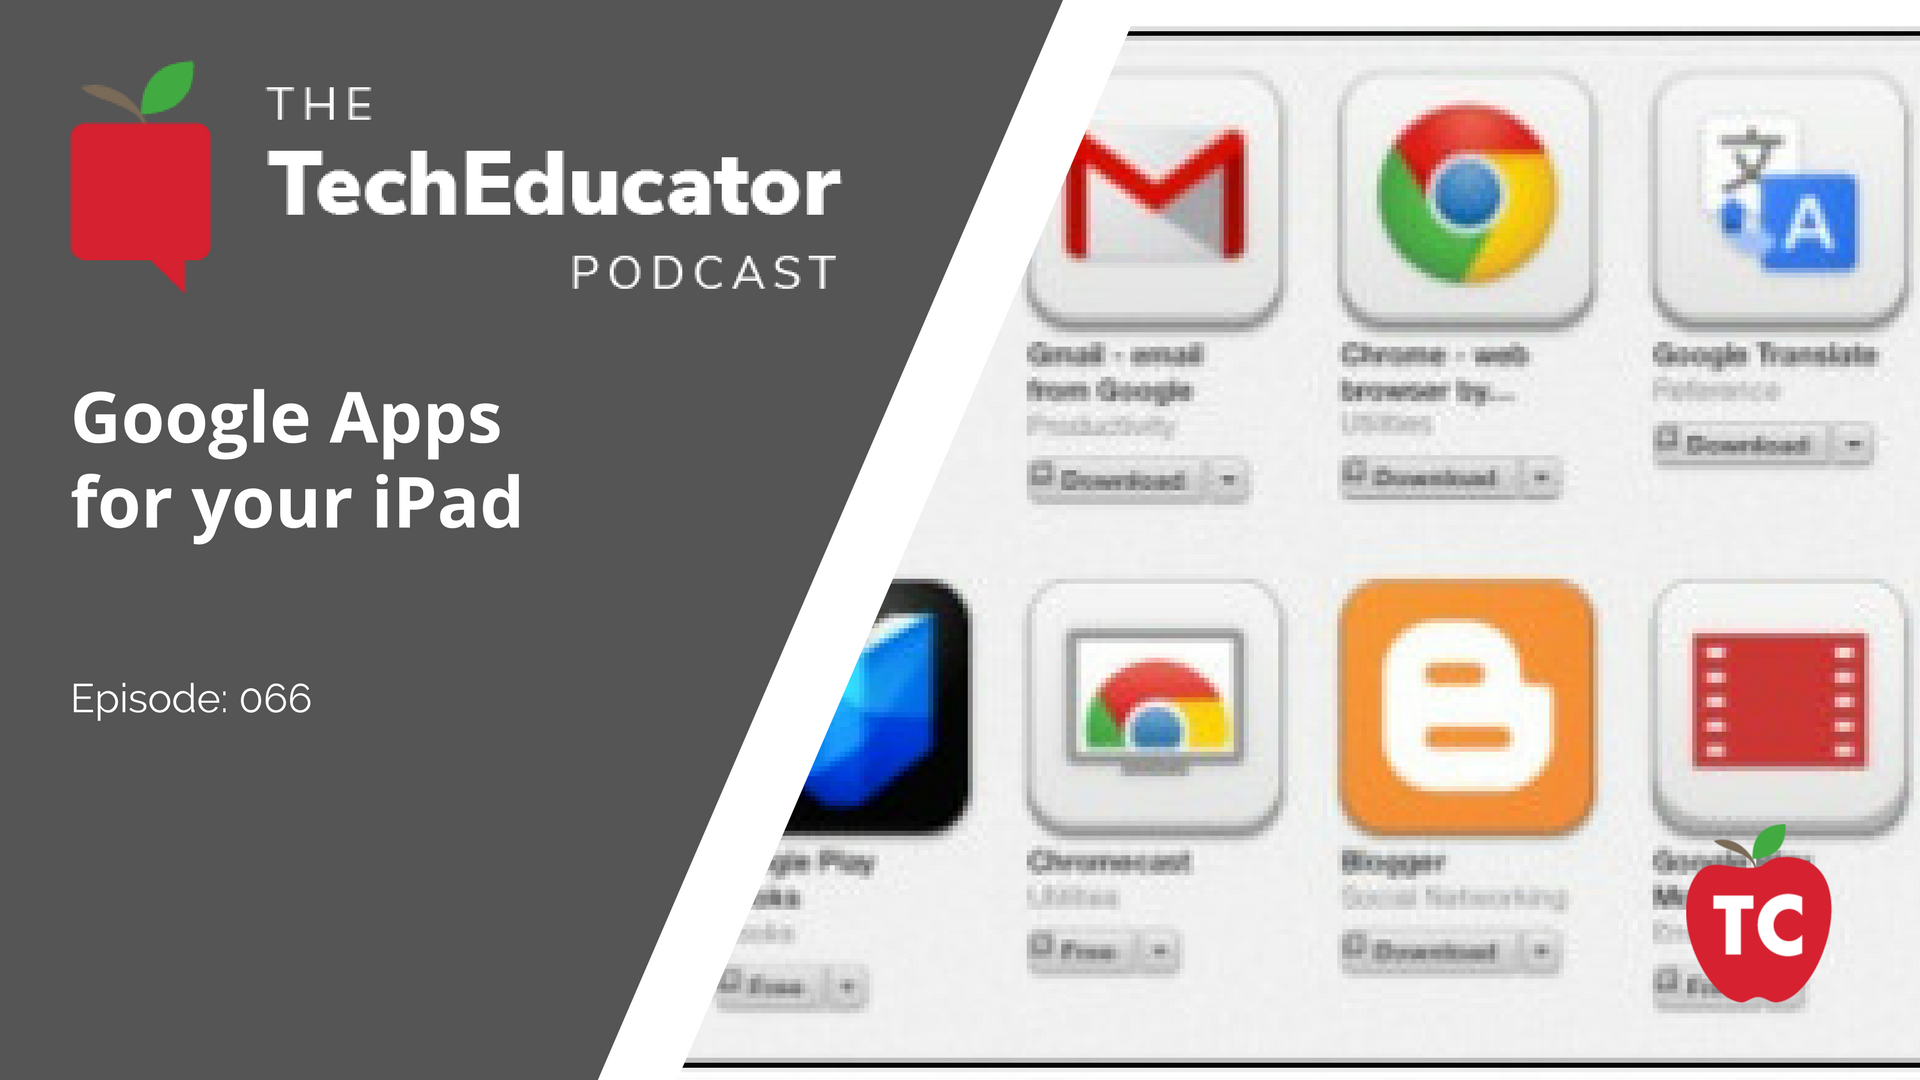 Learn how to use Google Apps on your iPad with your students